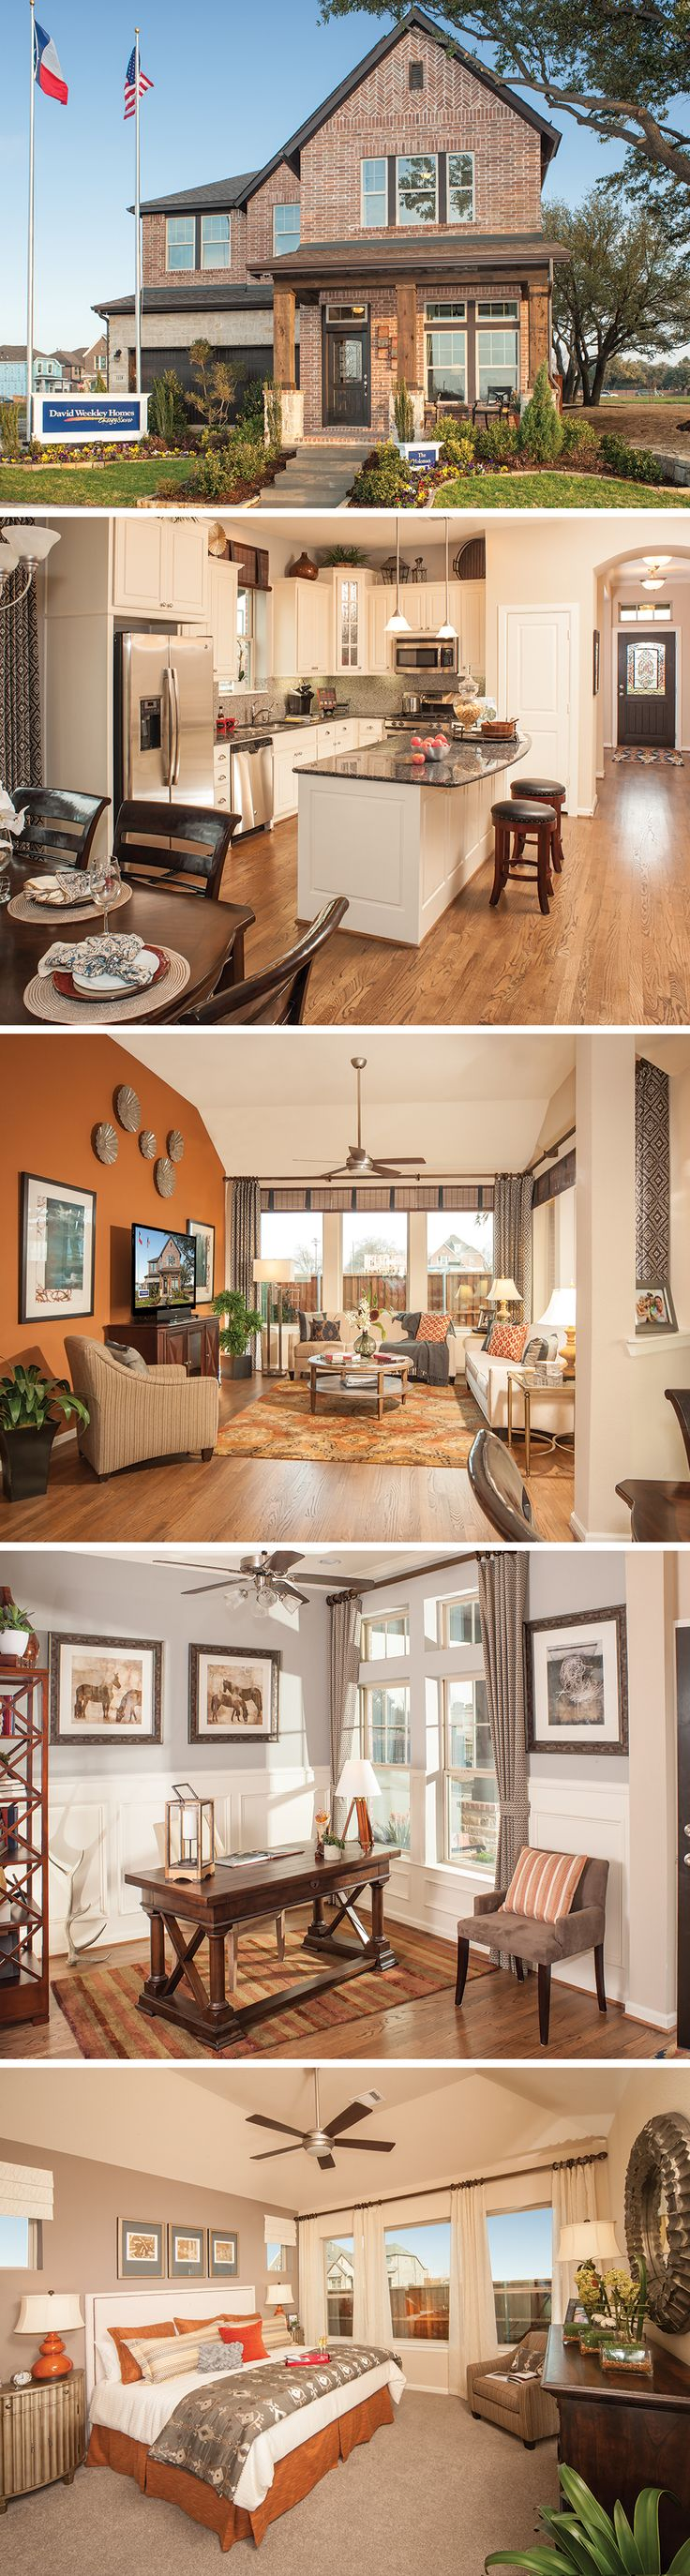 The Holoman in Dallas, Texas is a stunning 3-4 bedroom home with a spacious kitchen and must-have media room!